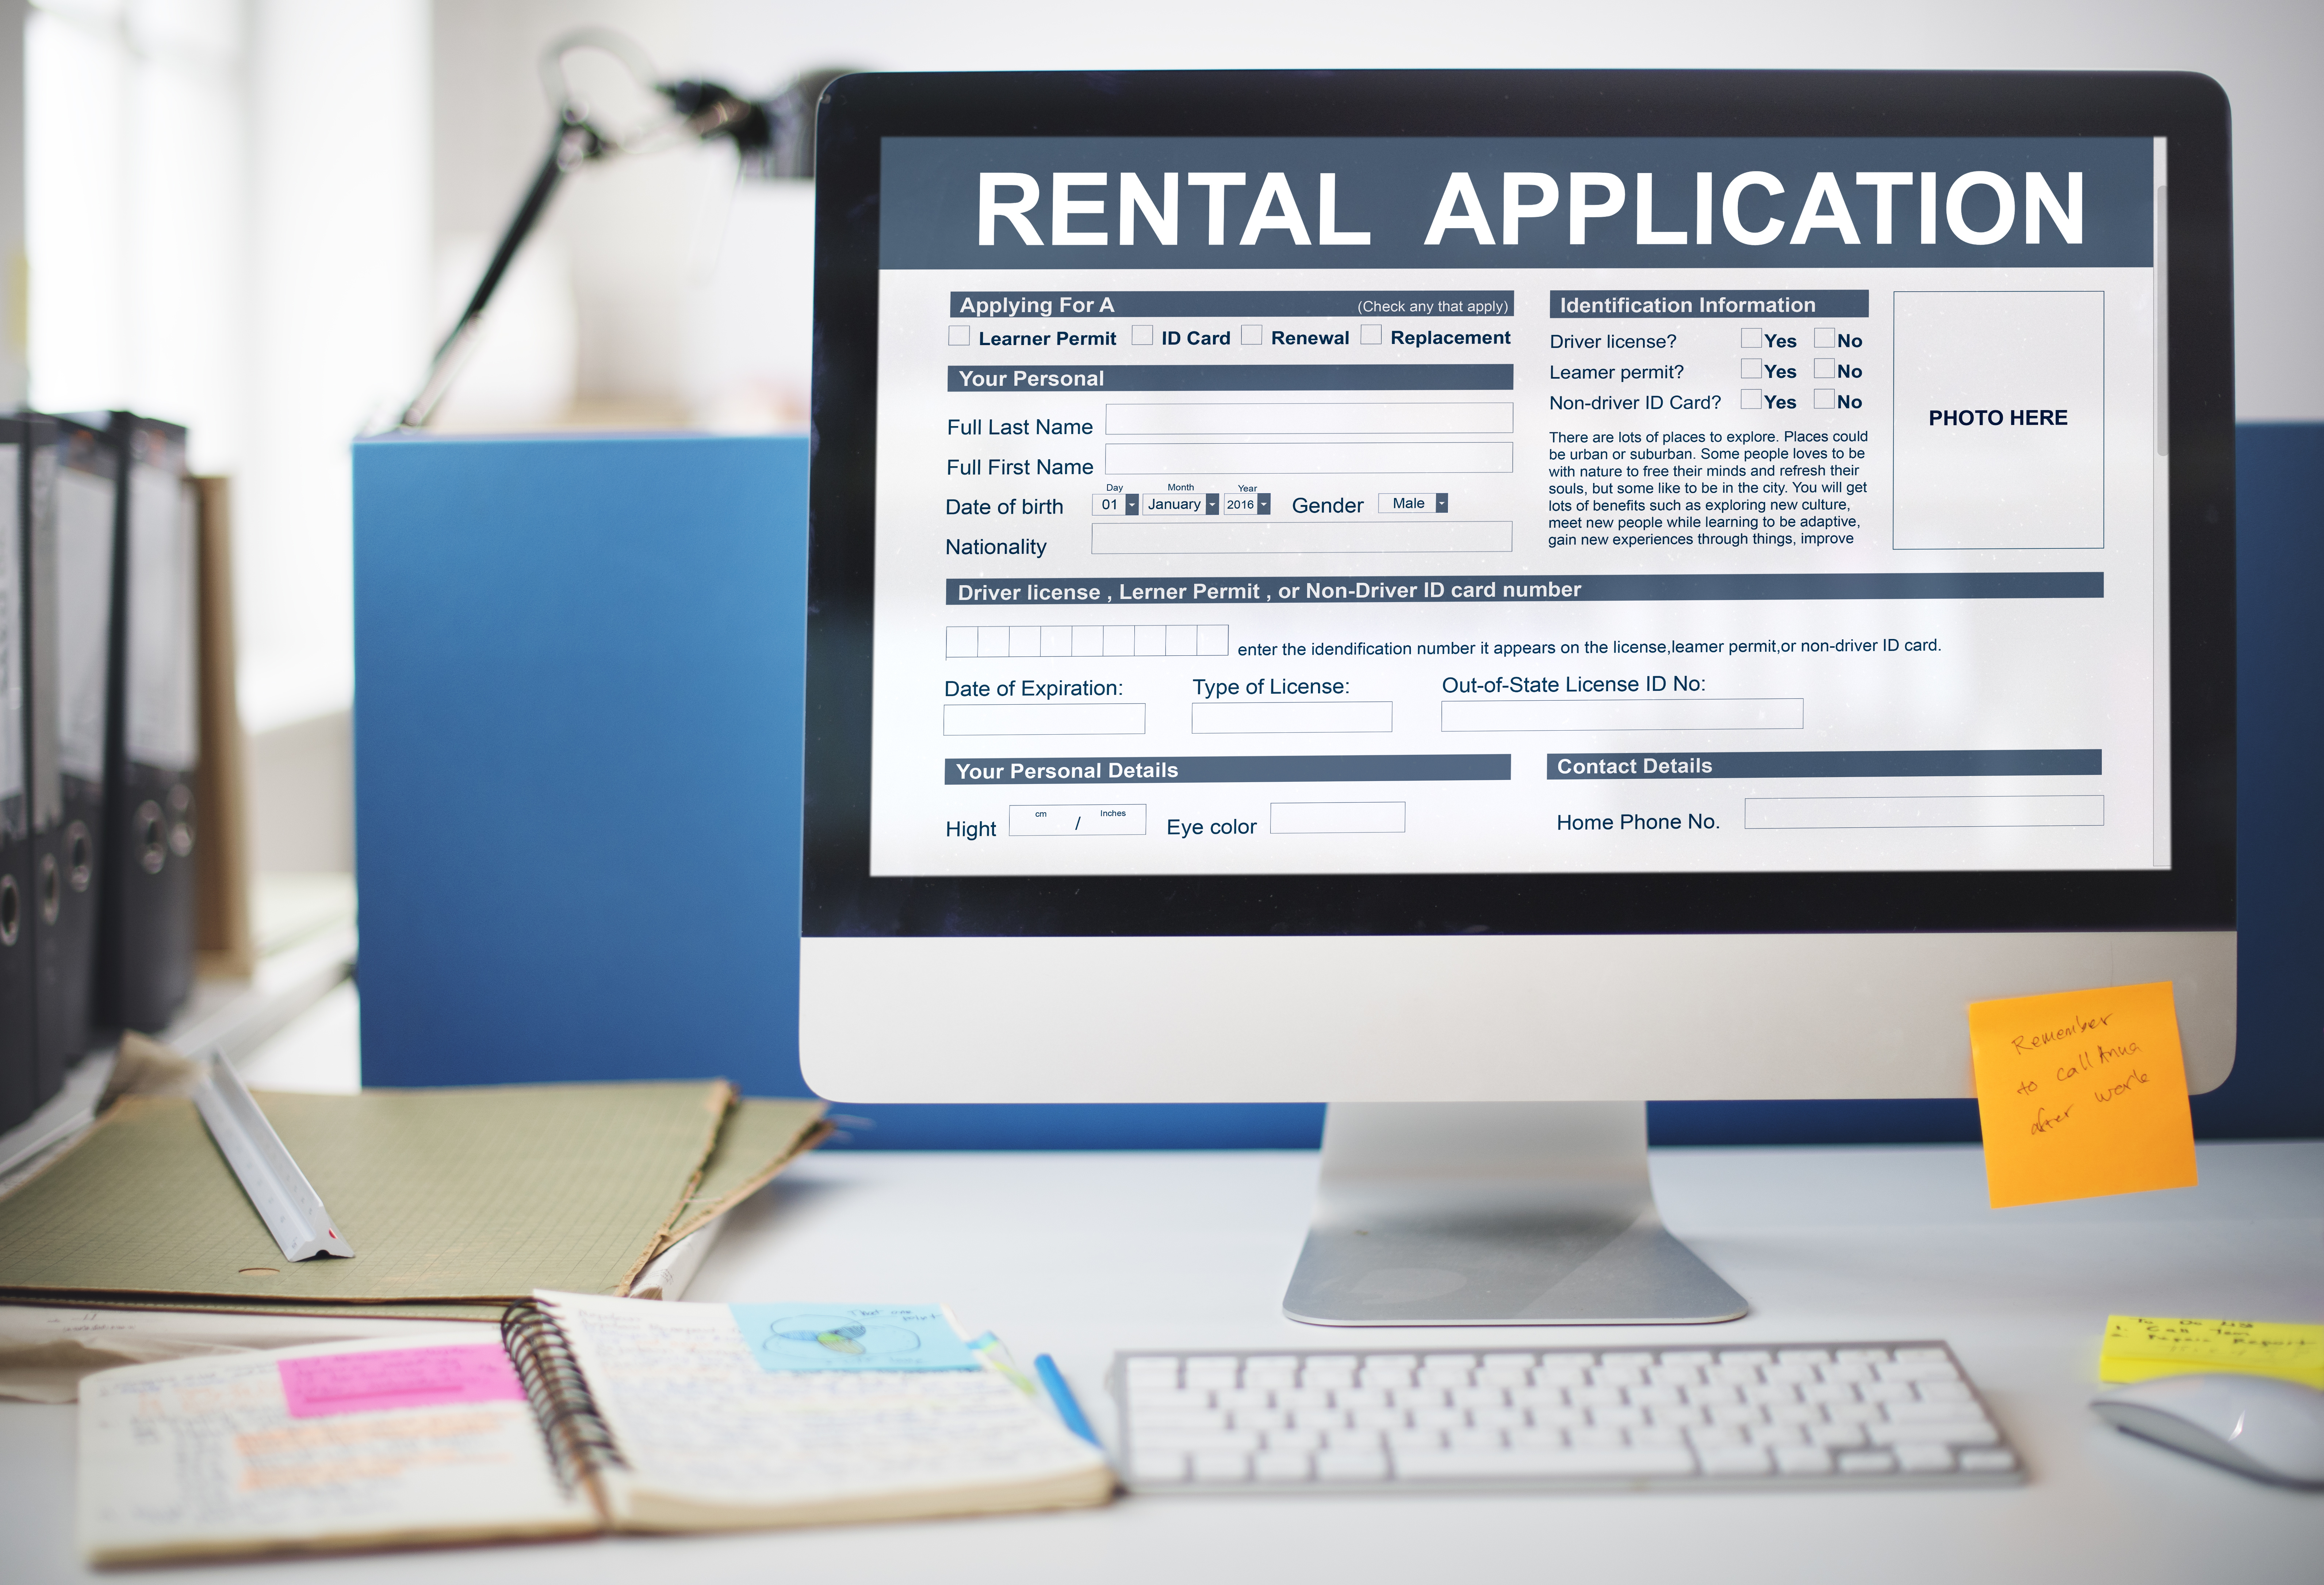 Landlord website with online rental application